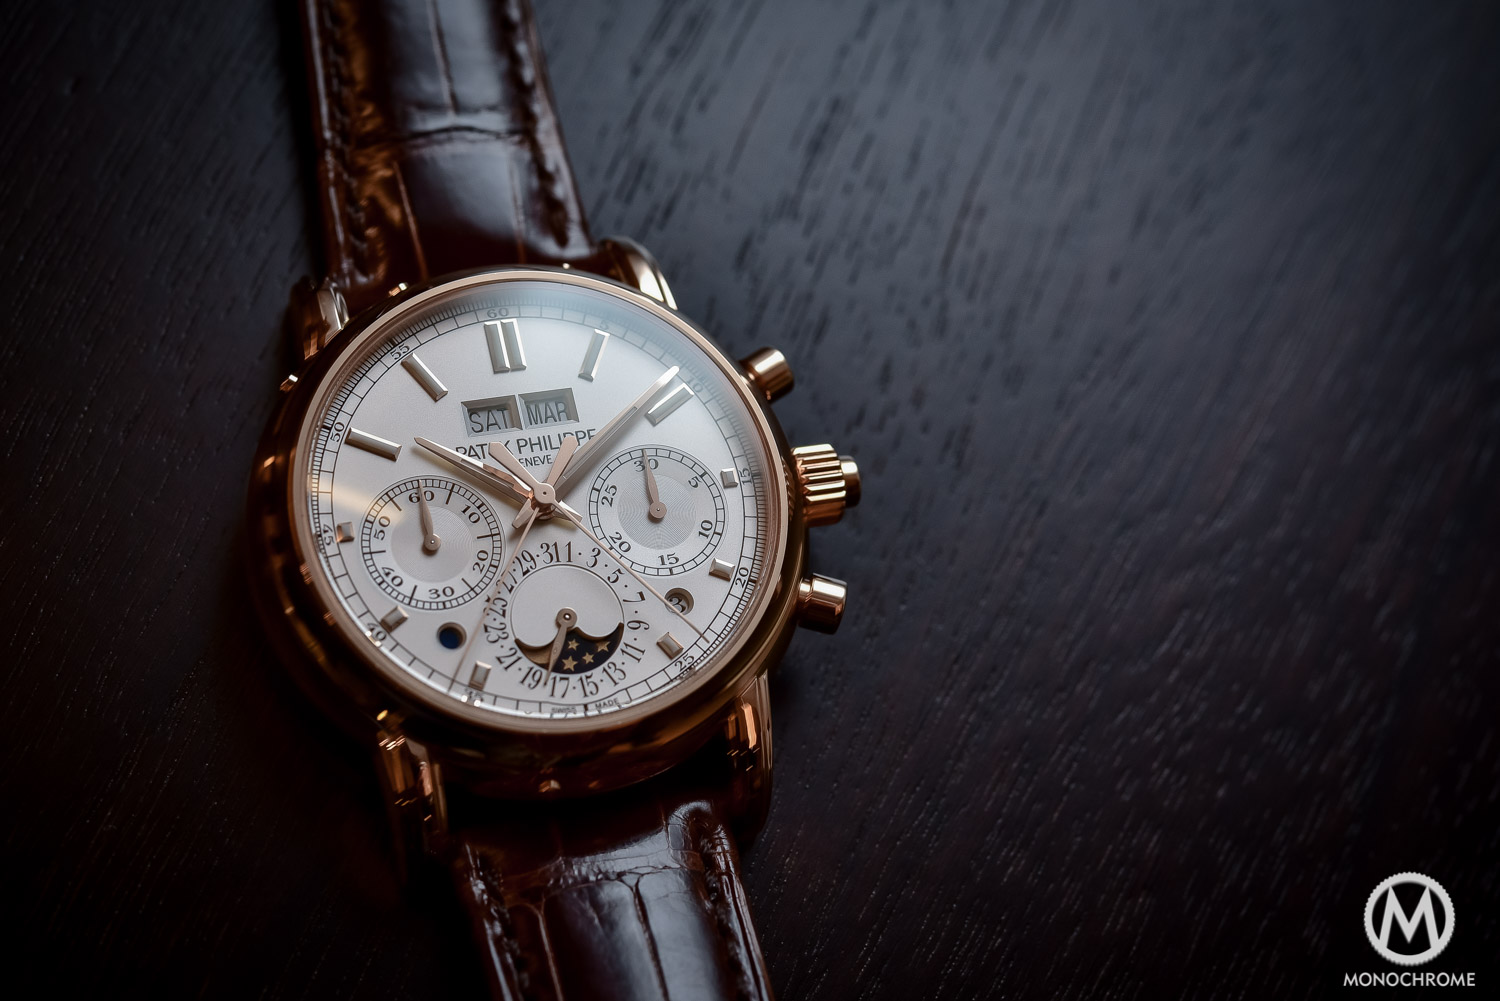 Patek Philippe 5204R Perpetual Calendar Split-Seconds Chronograph Rose Gold Replica Watch